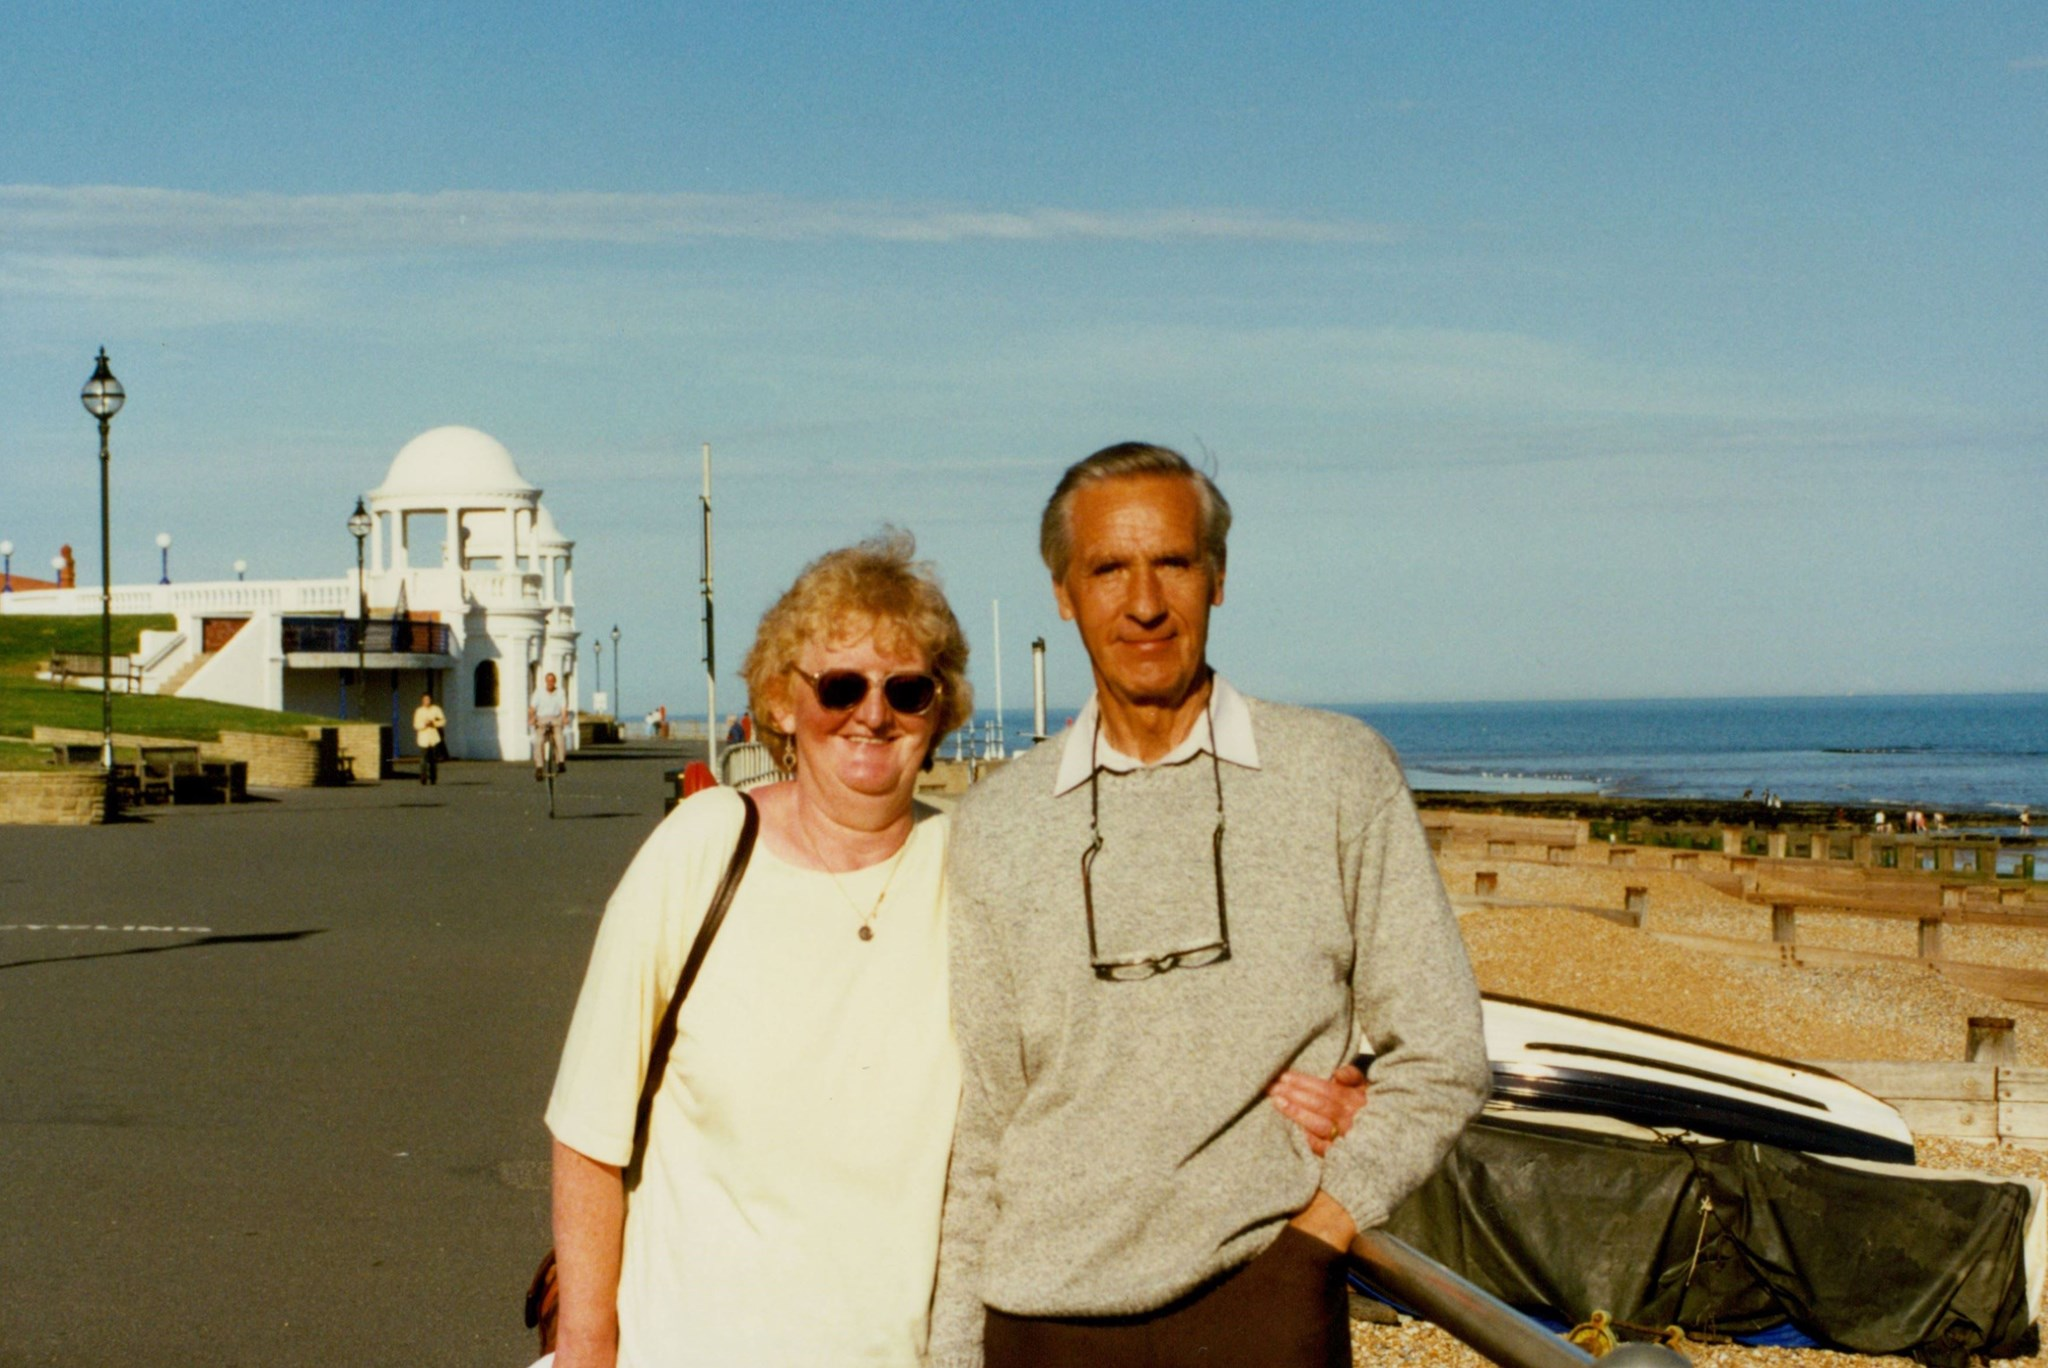 So much owed to these two - quieter life in Bexhill